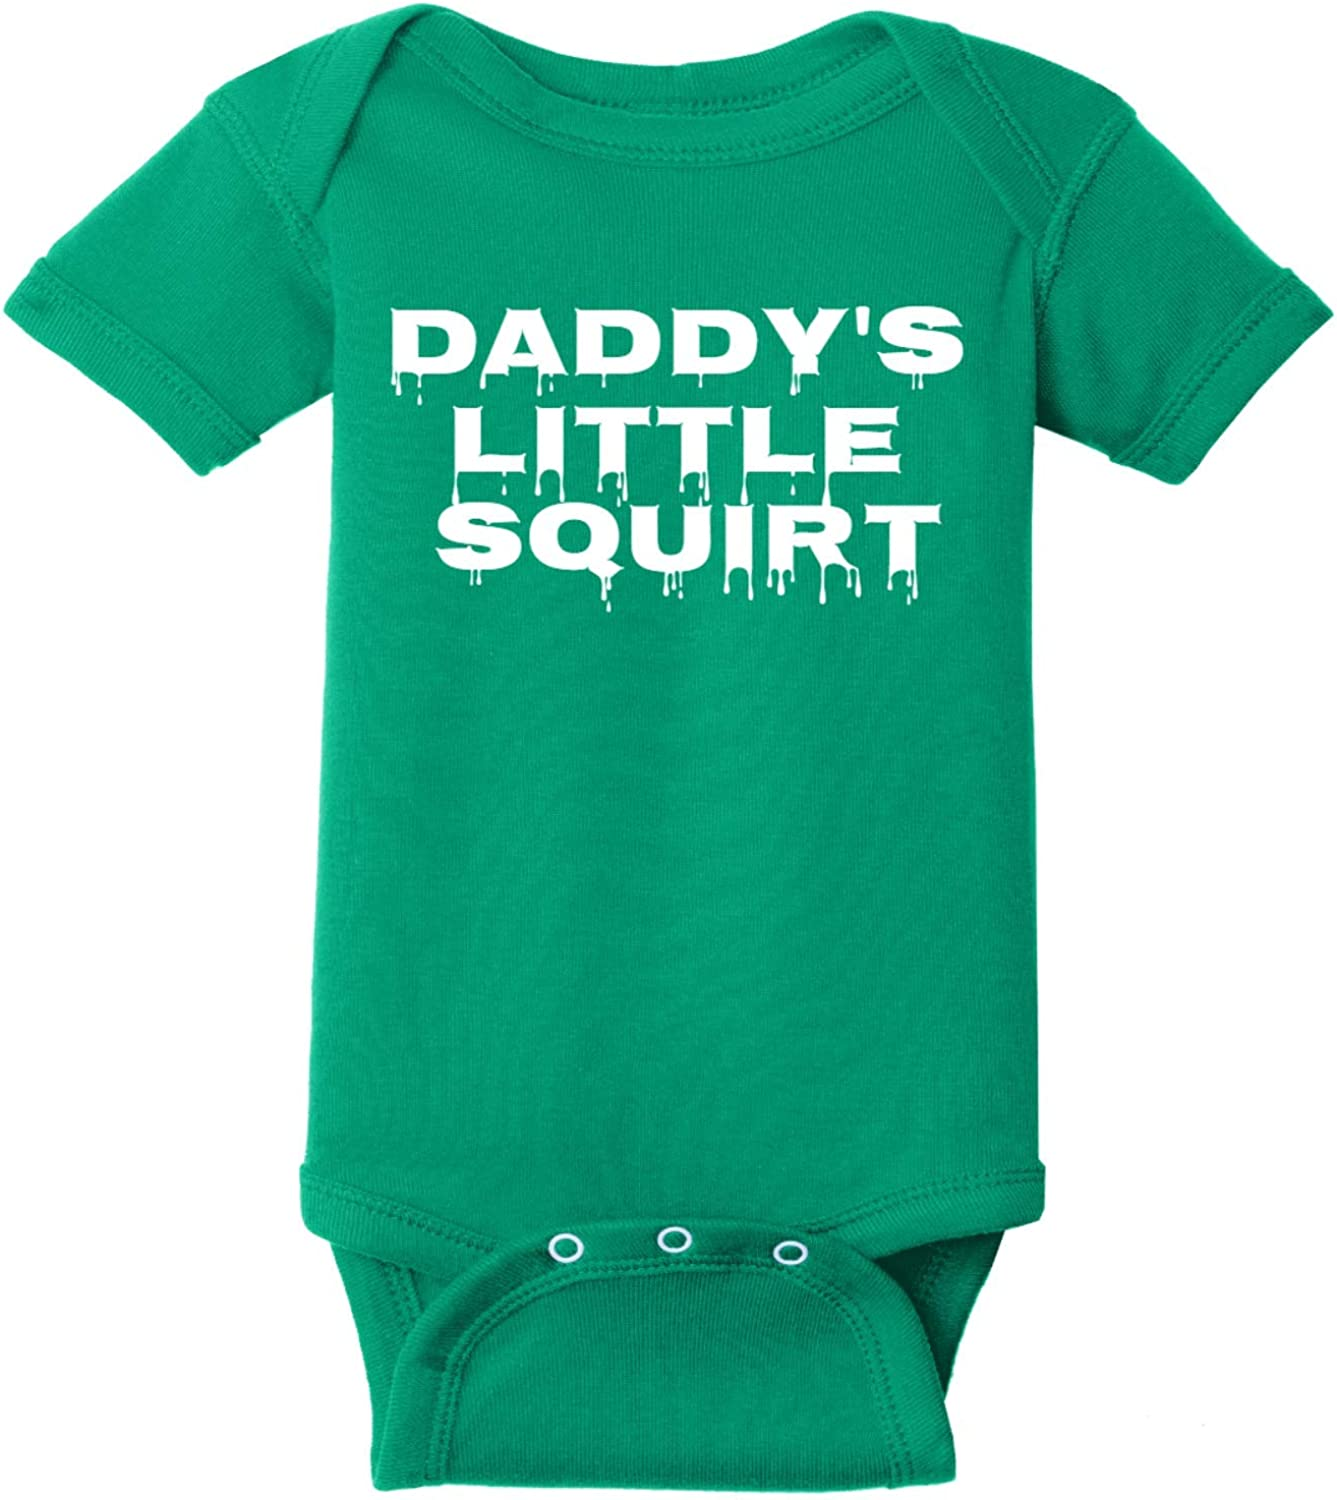 6 Months U.S Custom Tees Daddys Little Squirt Key Lime